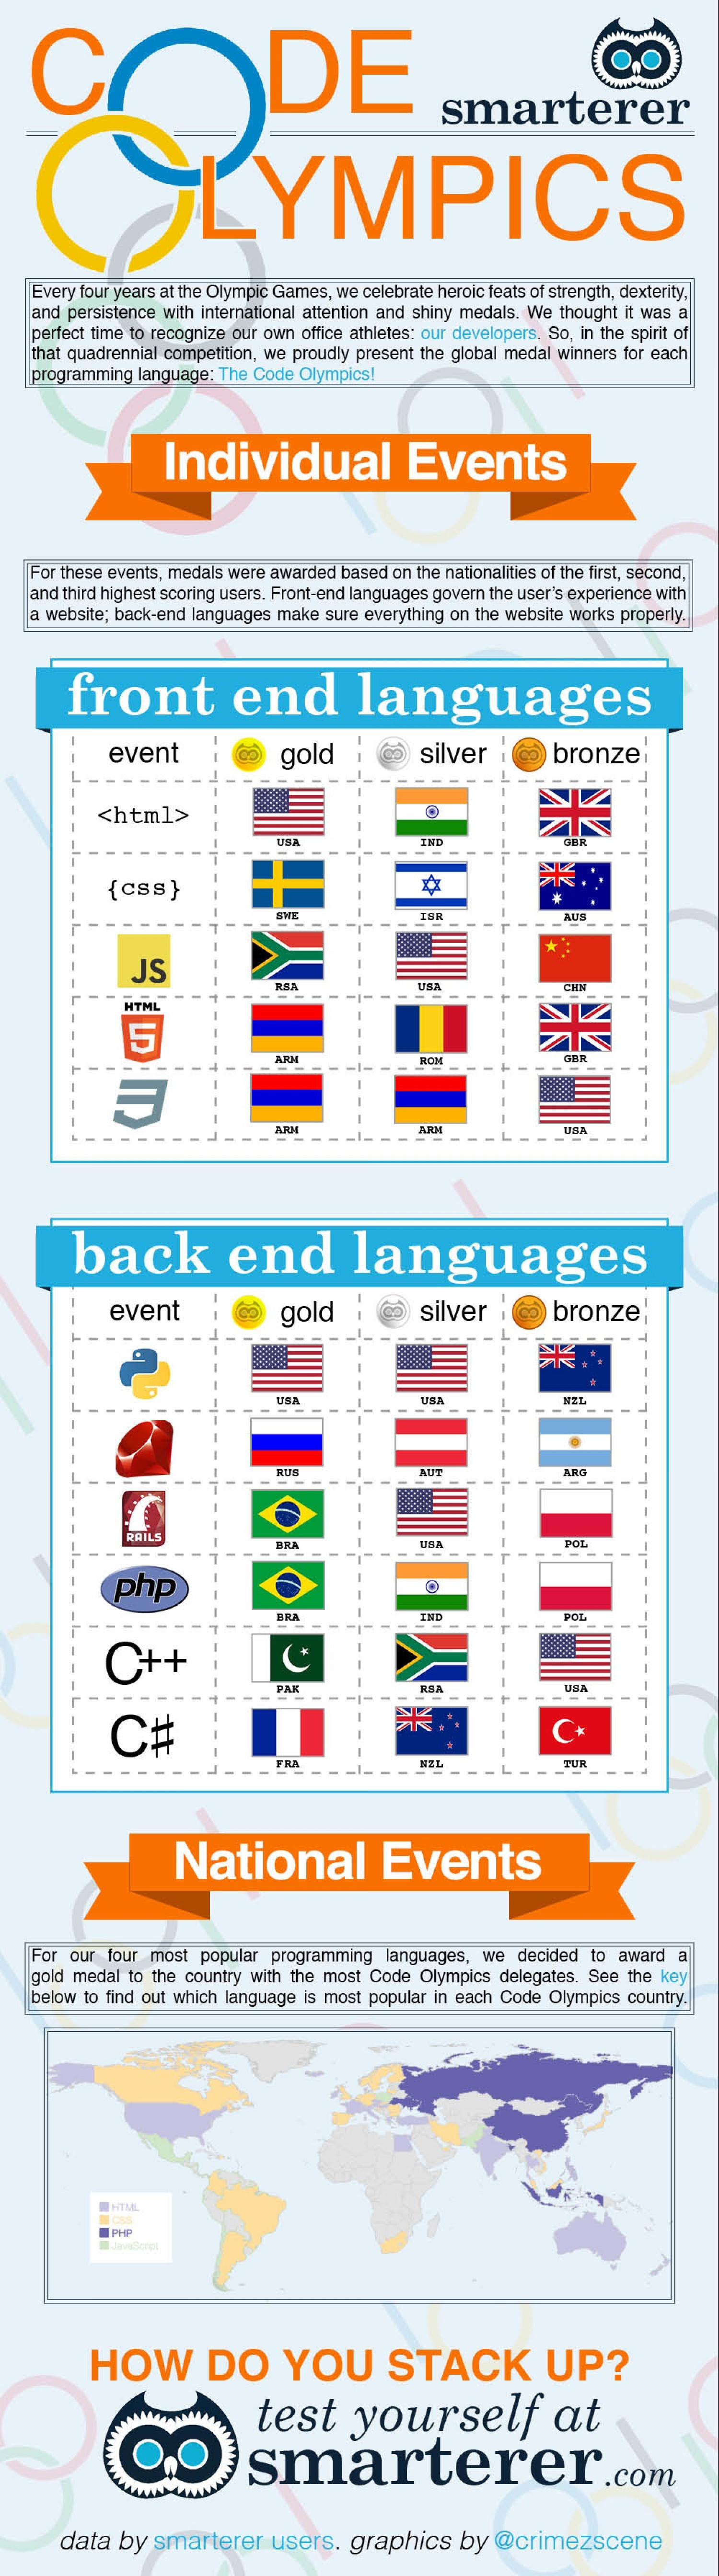 The Smarterer Code Olympics Infographic